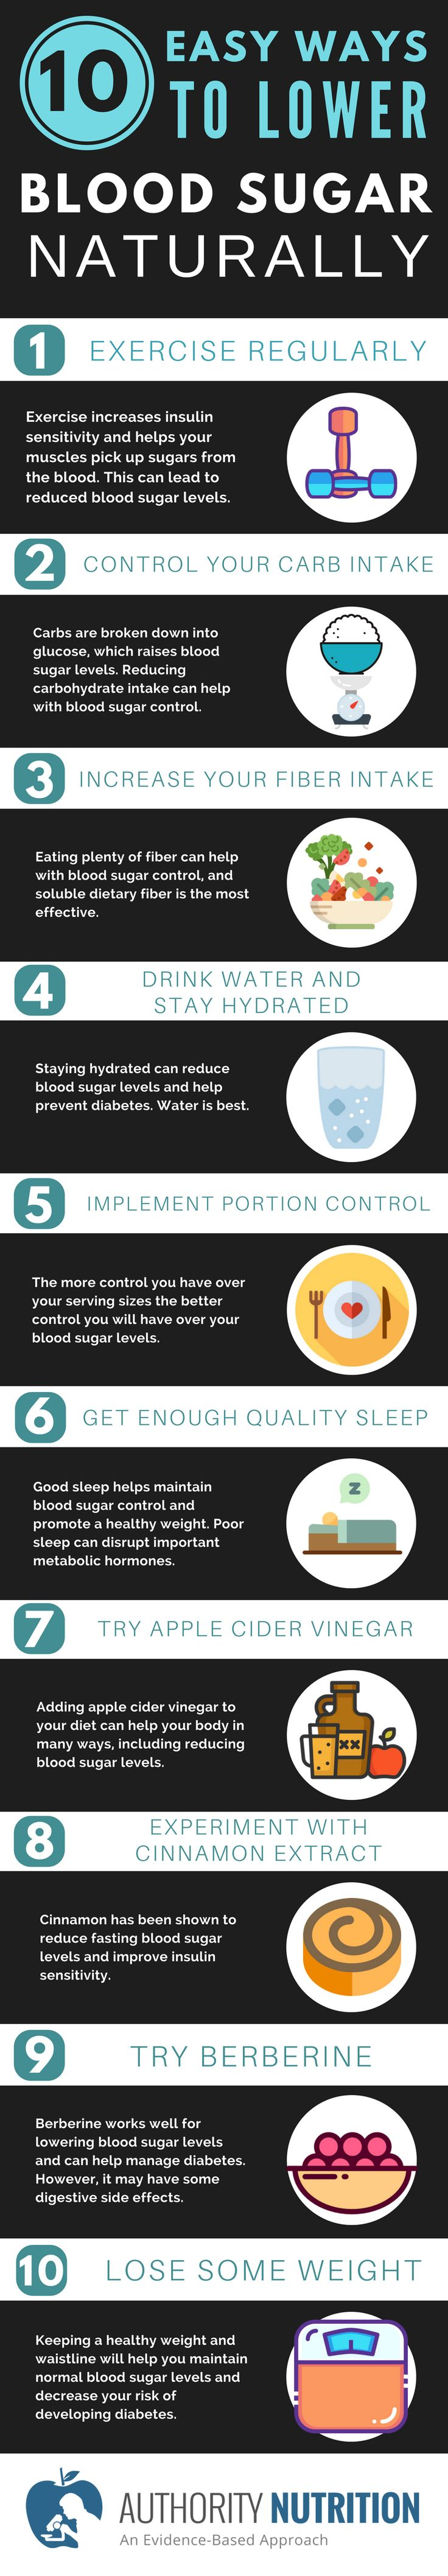 Having high blood sugar levels is an incredibly common problem. Here are 10 natural ways to lower your blood sugar levels. Learn more here: https://authoritynutrition.com/15-ways-to-lower-blood-sugar/